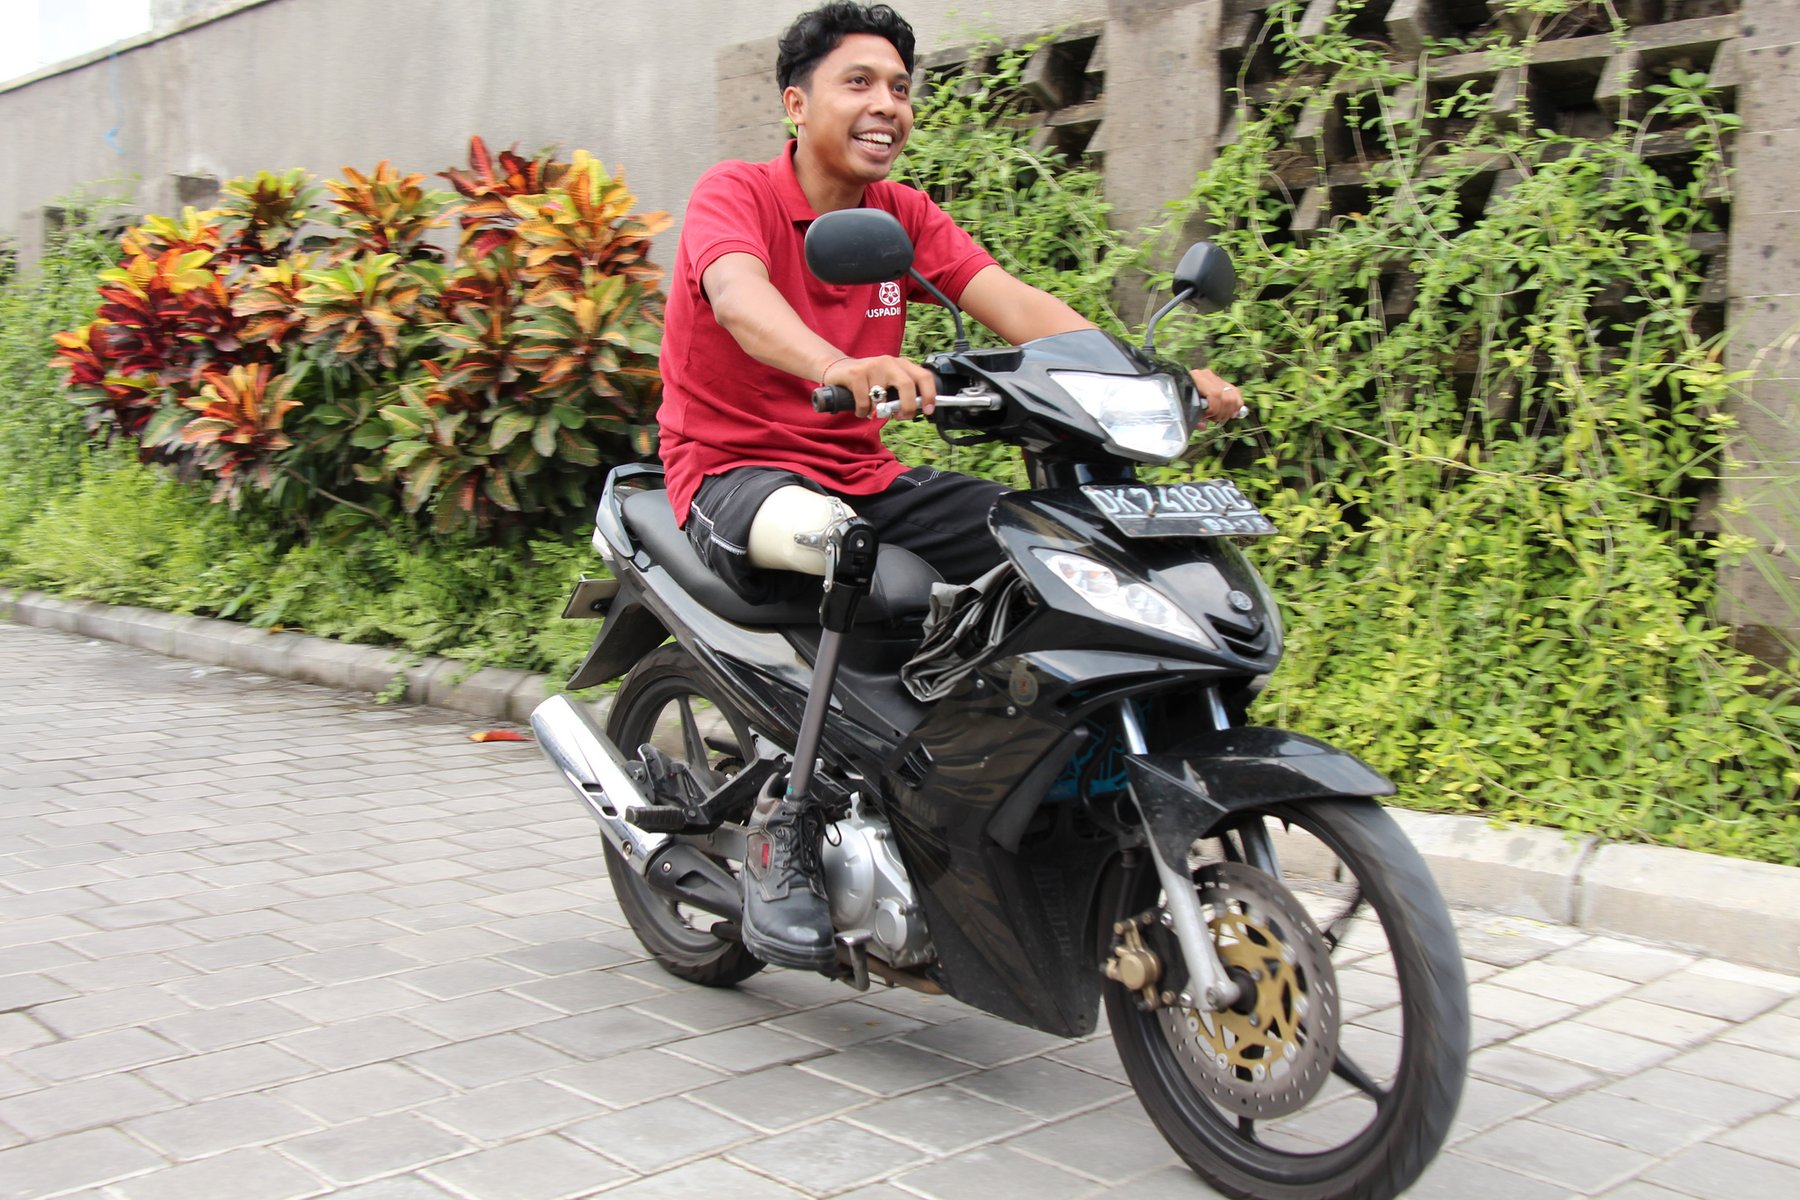 A man in a red t-shirt on a motorbike parked in a plant-lined paved driveway